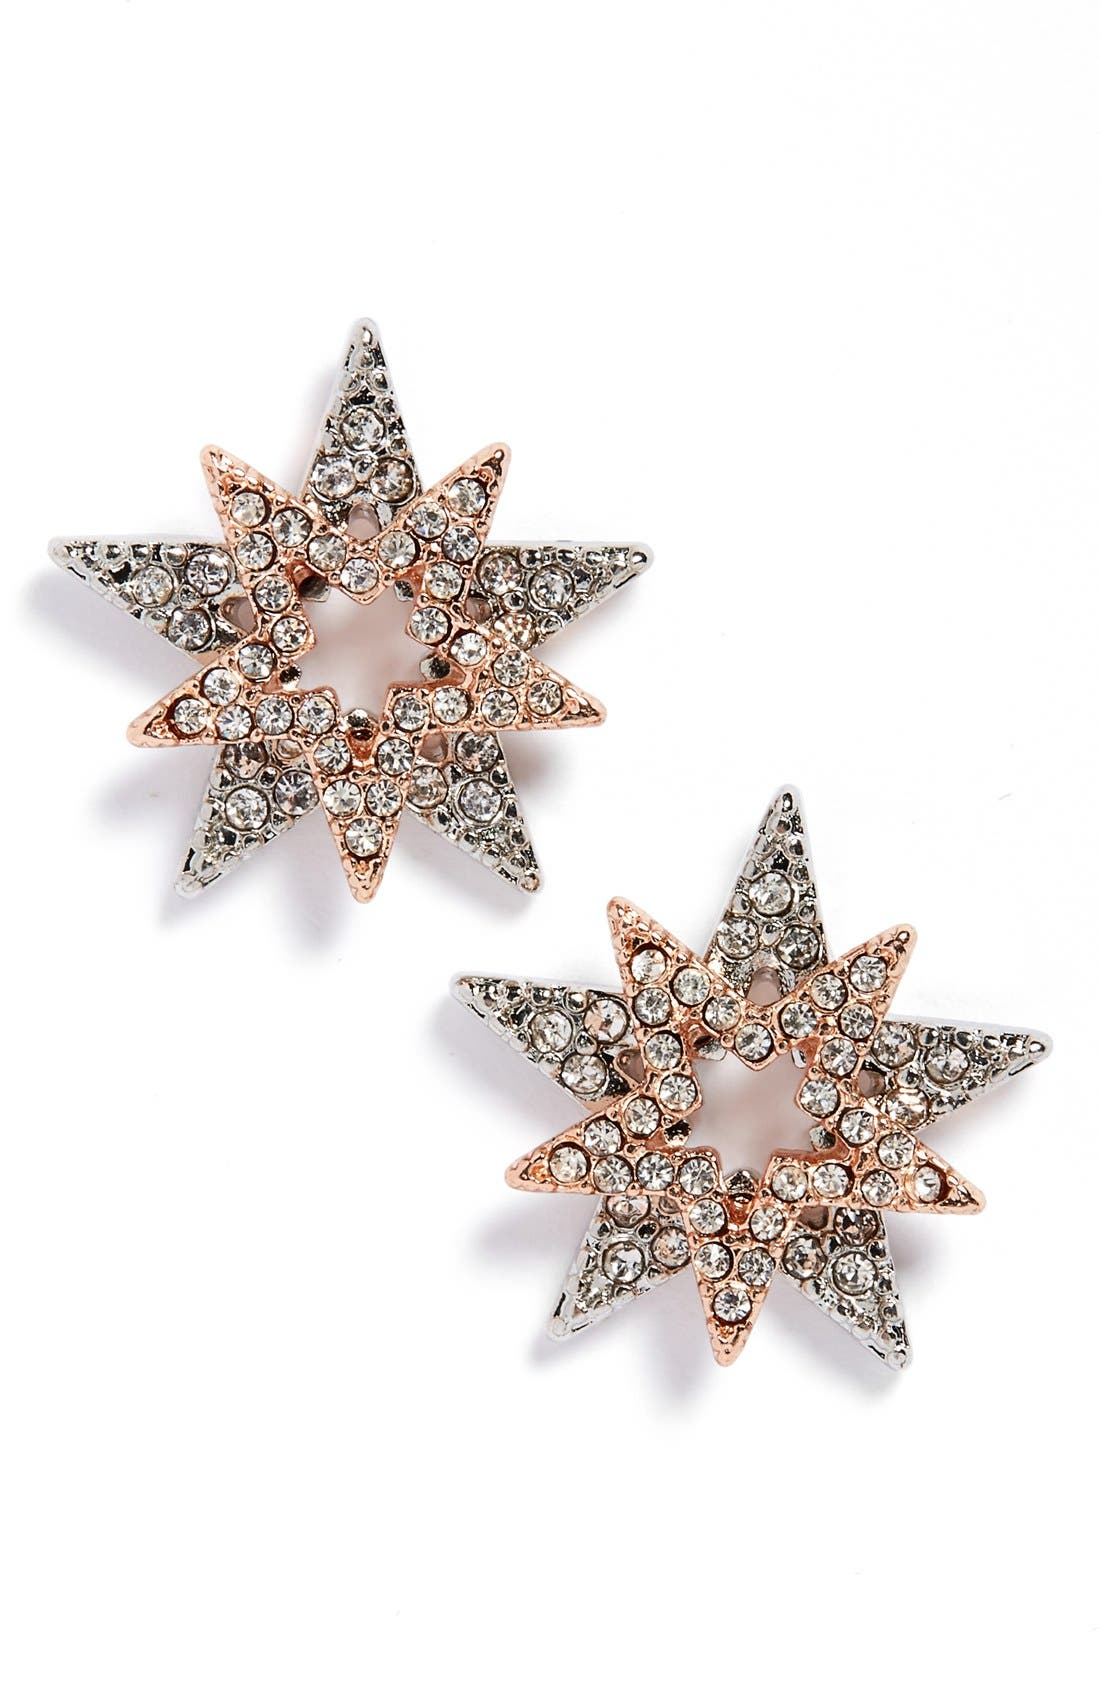 Main Image - Sole Society 'Celestial' Stud Earrings